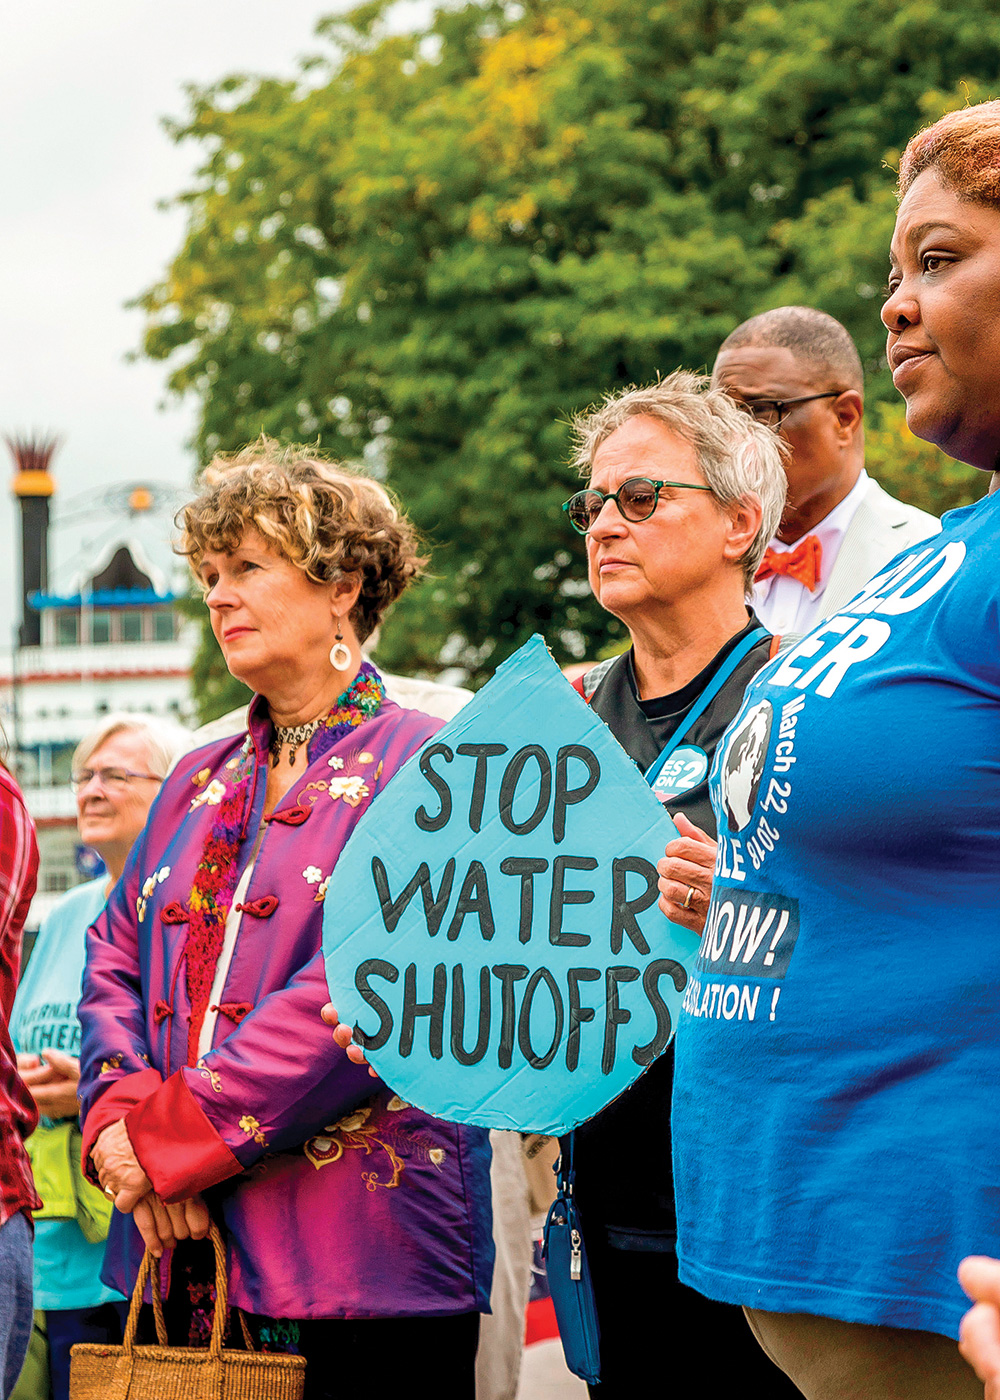 Water access in Detroit has been the subject of advocacy efforts and protests since the city began widespread service shutoffs six years ago due to a historic bankruptcy. Photo by Jim West/Alamy.